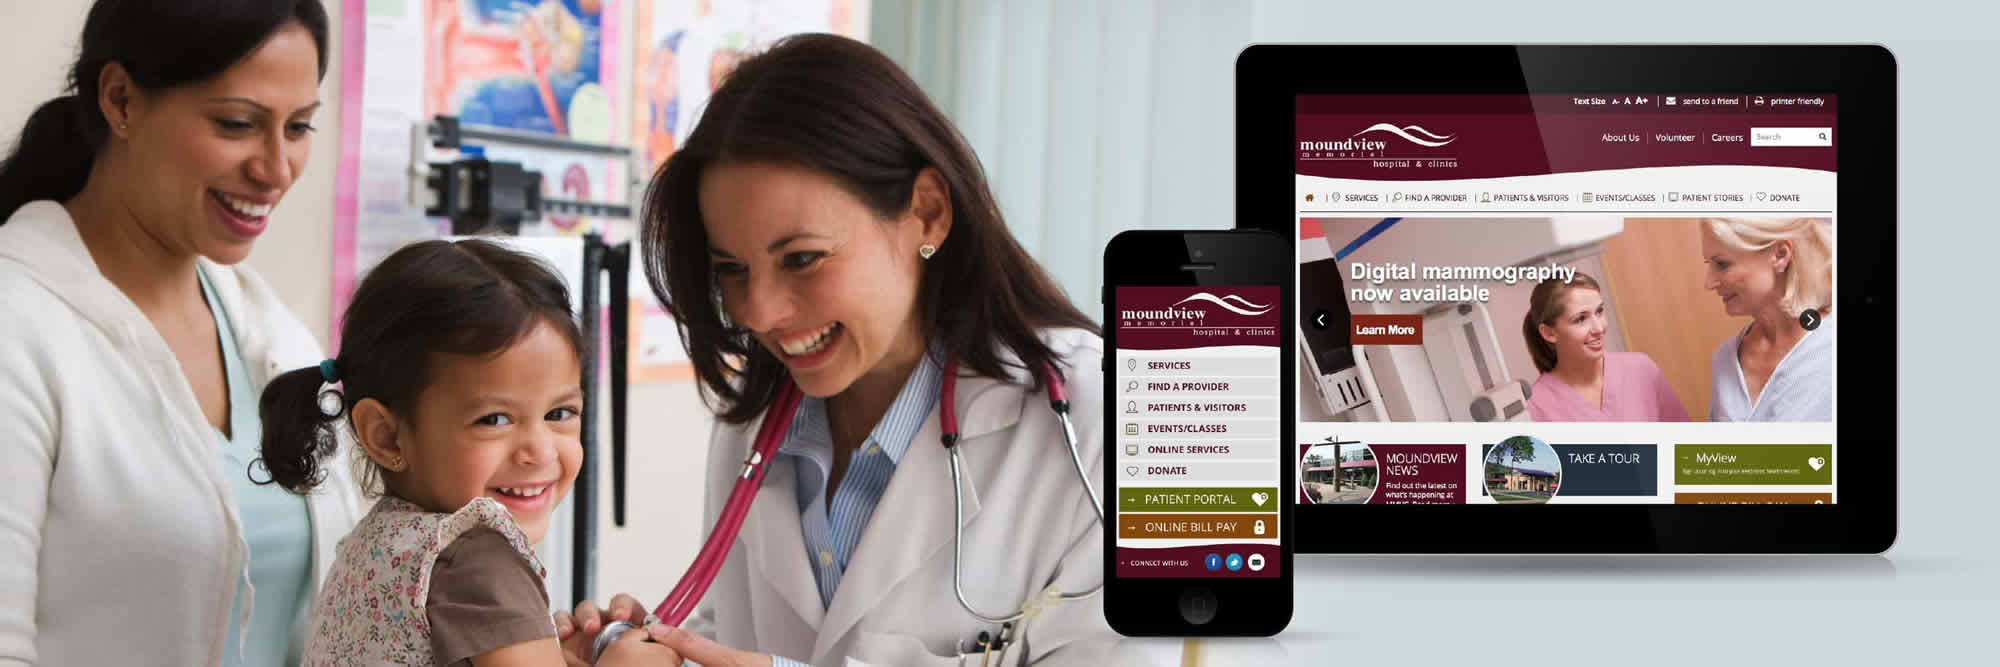 Moundview Memorial Hospital Joomla Development Wisconsin